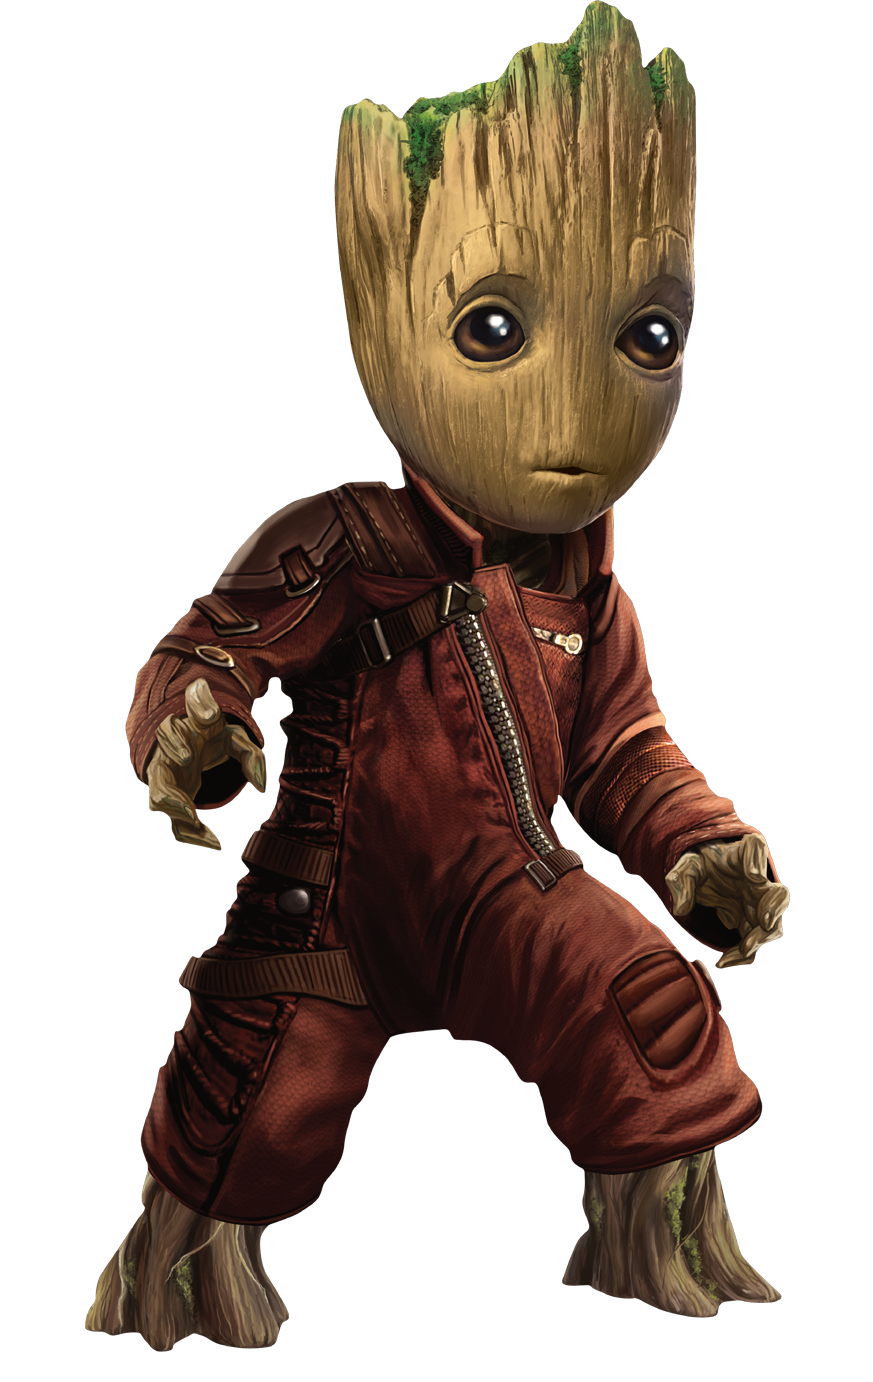 Guardians of the galaxy vol2 baby groot.-Guardians of the galaxy vol2 baby groot.png-5